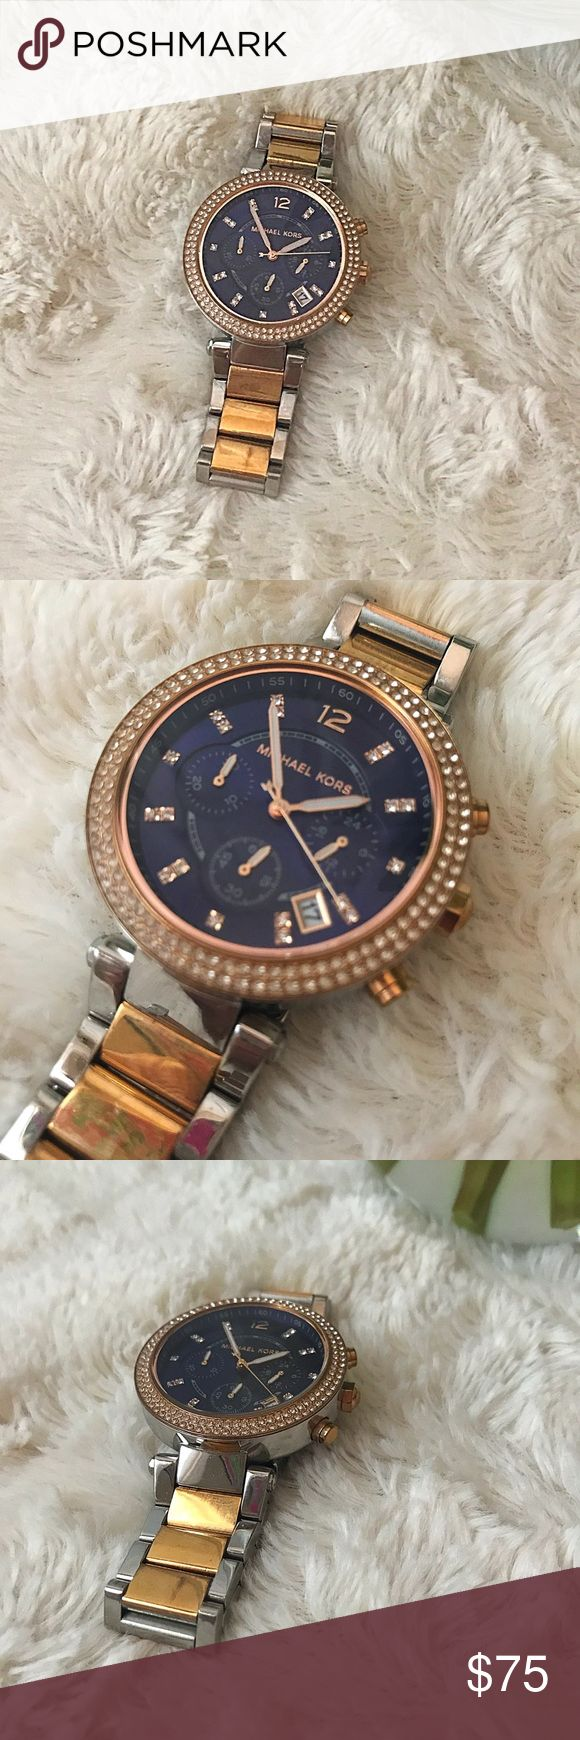 Michael Kors Gold Silver and Blue Watch Michael Kors Gold Silver and Blue Watch Michael Kors Accessories Watches